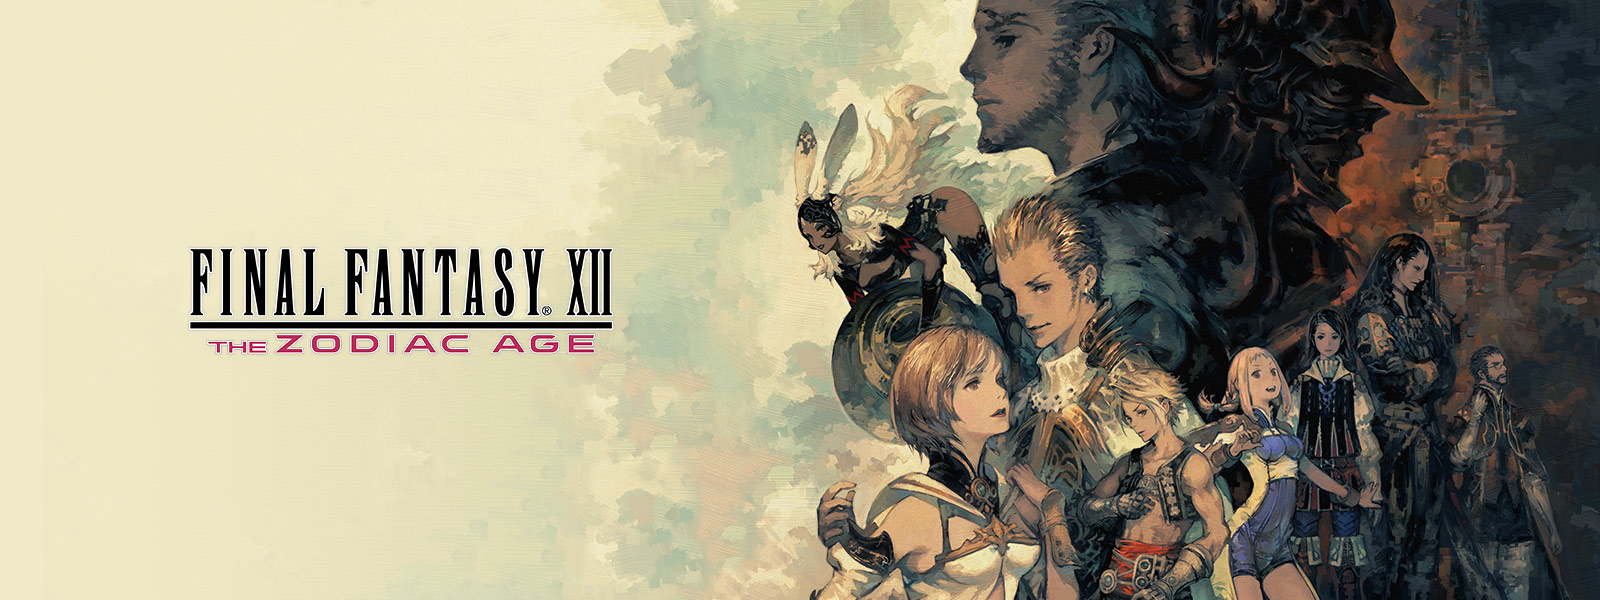 Montage van personages uit FINAL FANTASY XII THE ZODIAC AGE